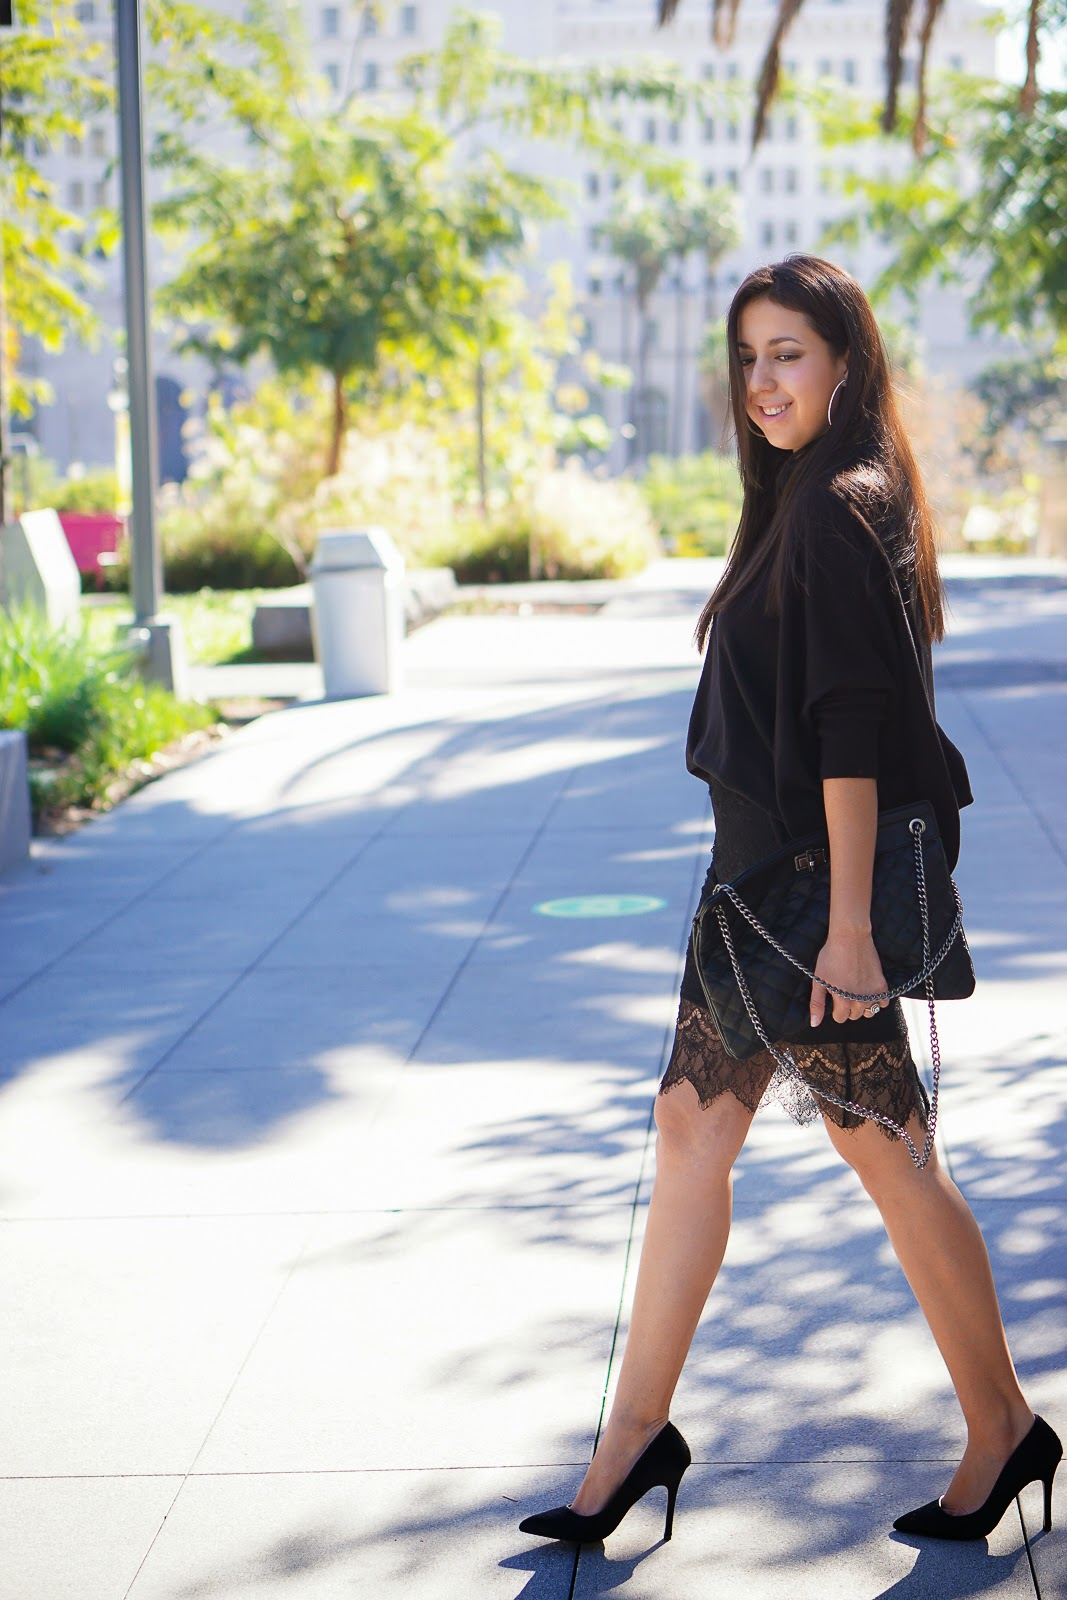 Kardashian Kollection black lace skirt, Black Lace Skirt, Black Pumps, Black Heels, Forever 21 Black Clutch, Oversized Sweater, Pencil Skirt, Lace Skirt, How to wear a Lace Skirt, Kardashian Kollection